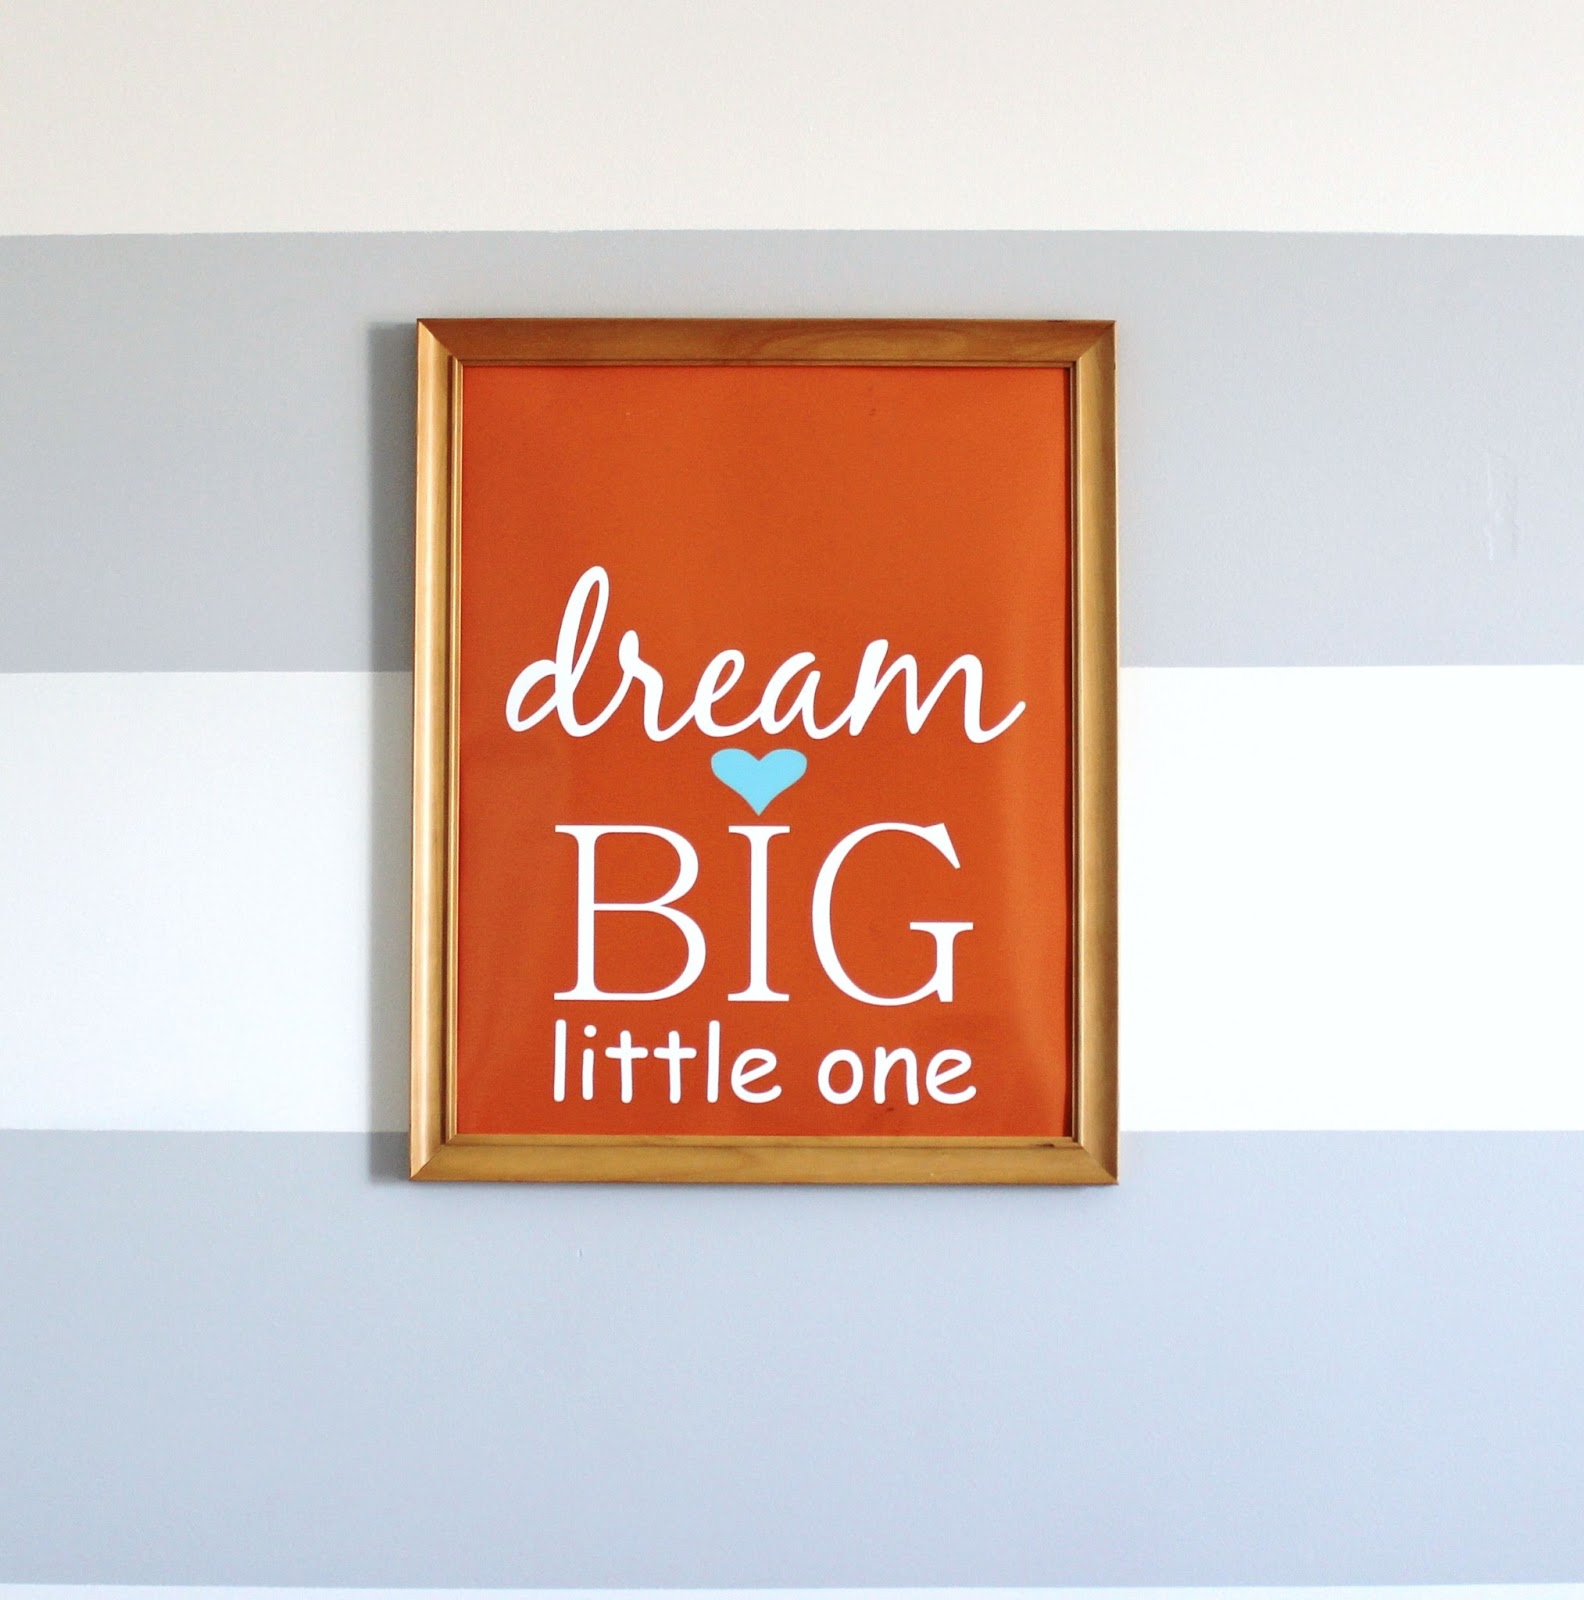 Free Nursery Printable Dream Big Little One Wall Art Delightfully Noted